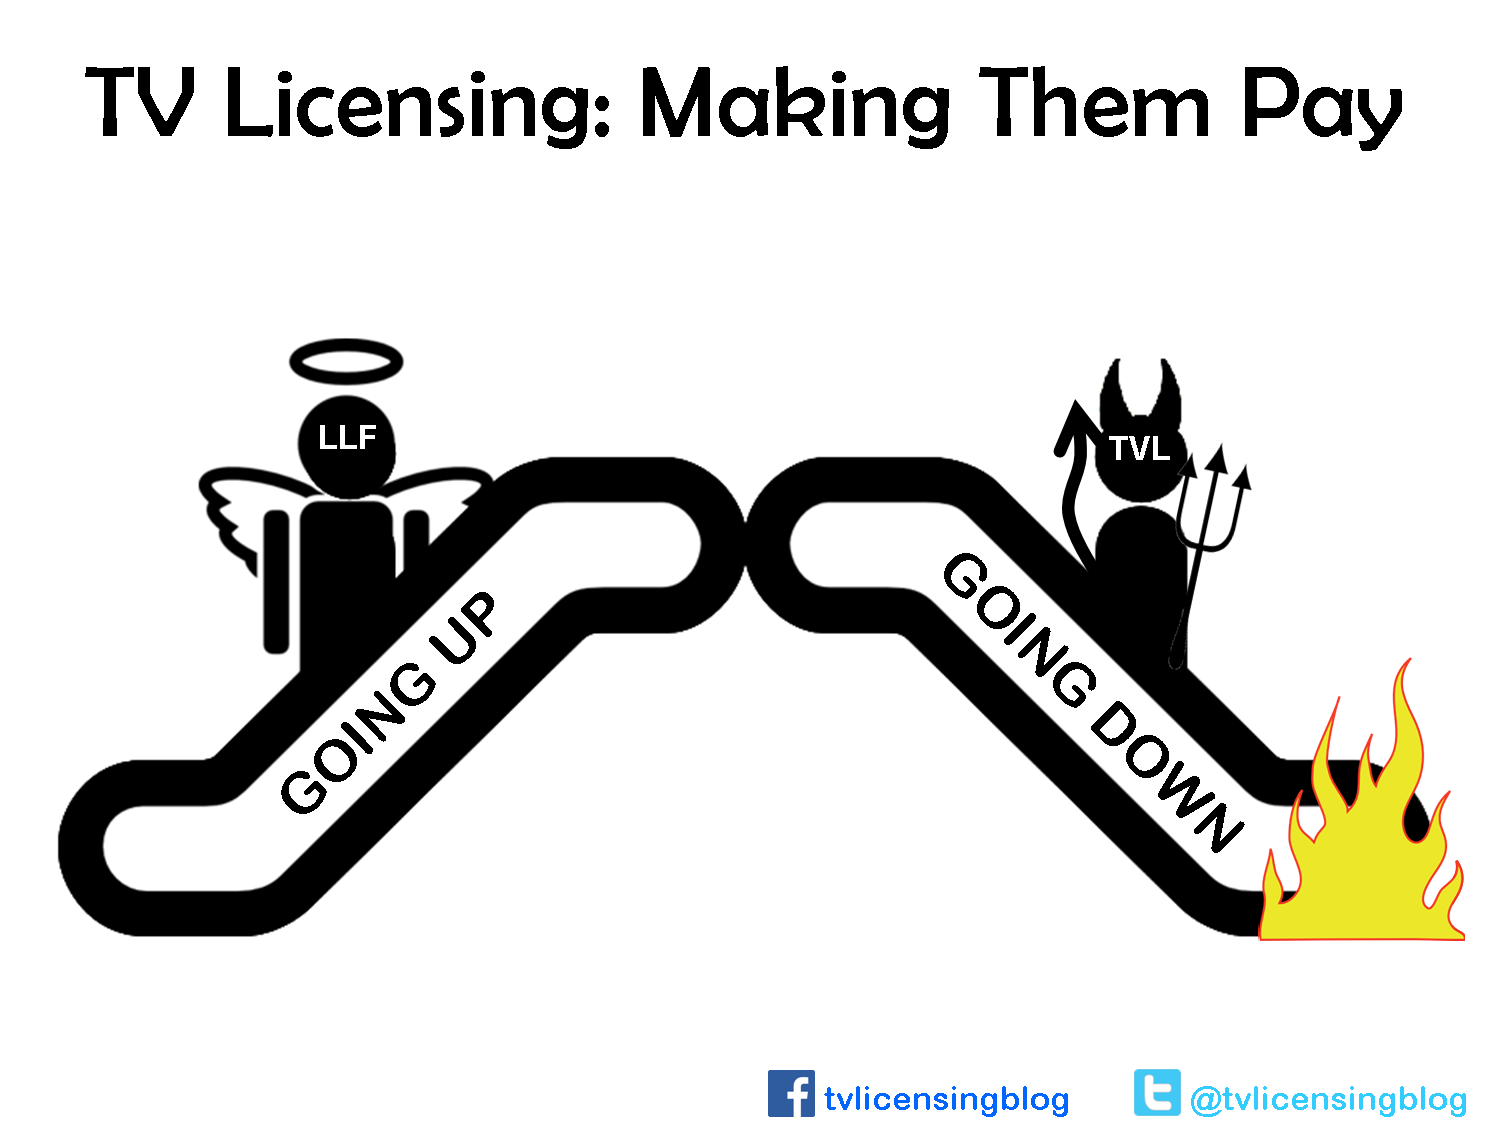 TV Licensing Compensation